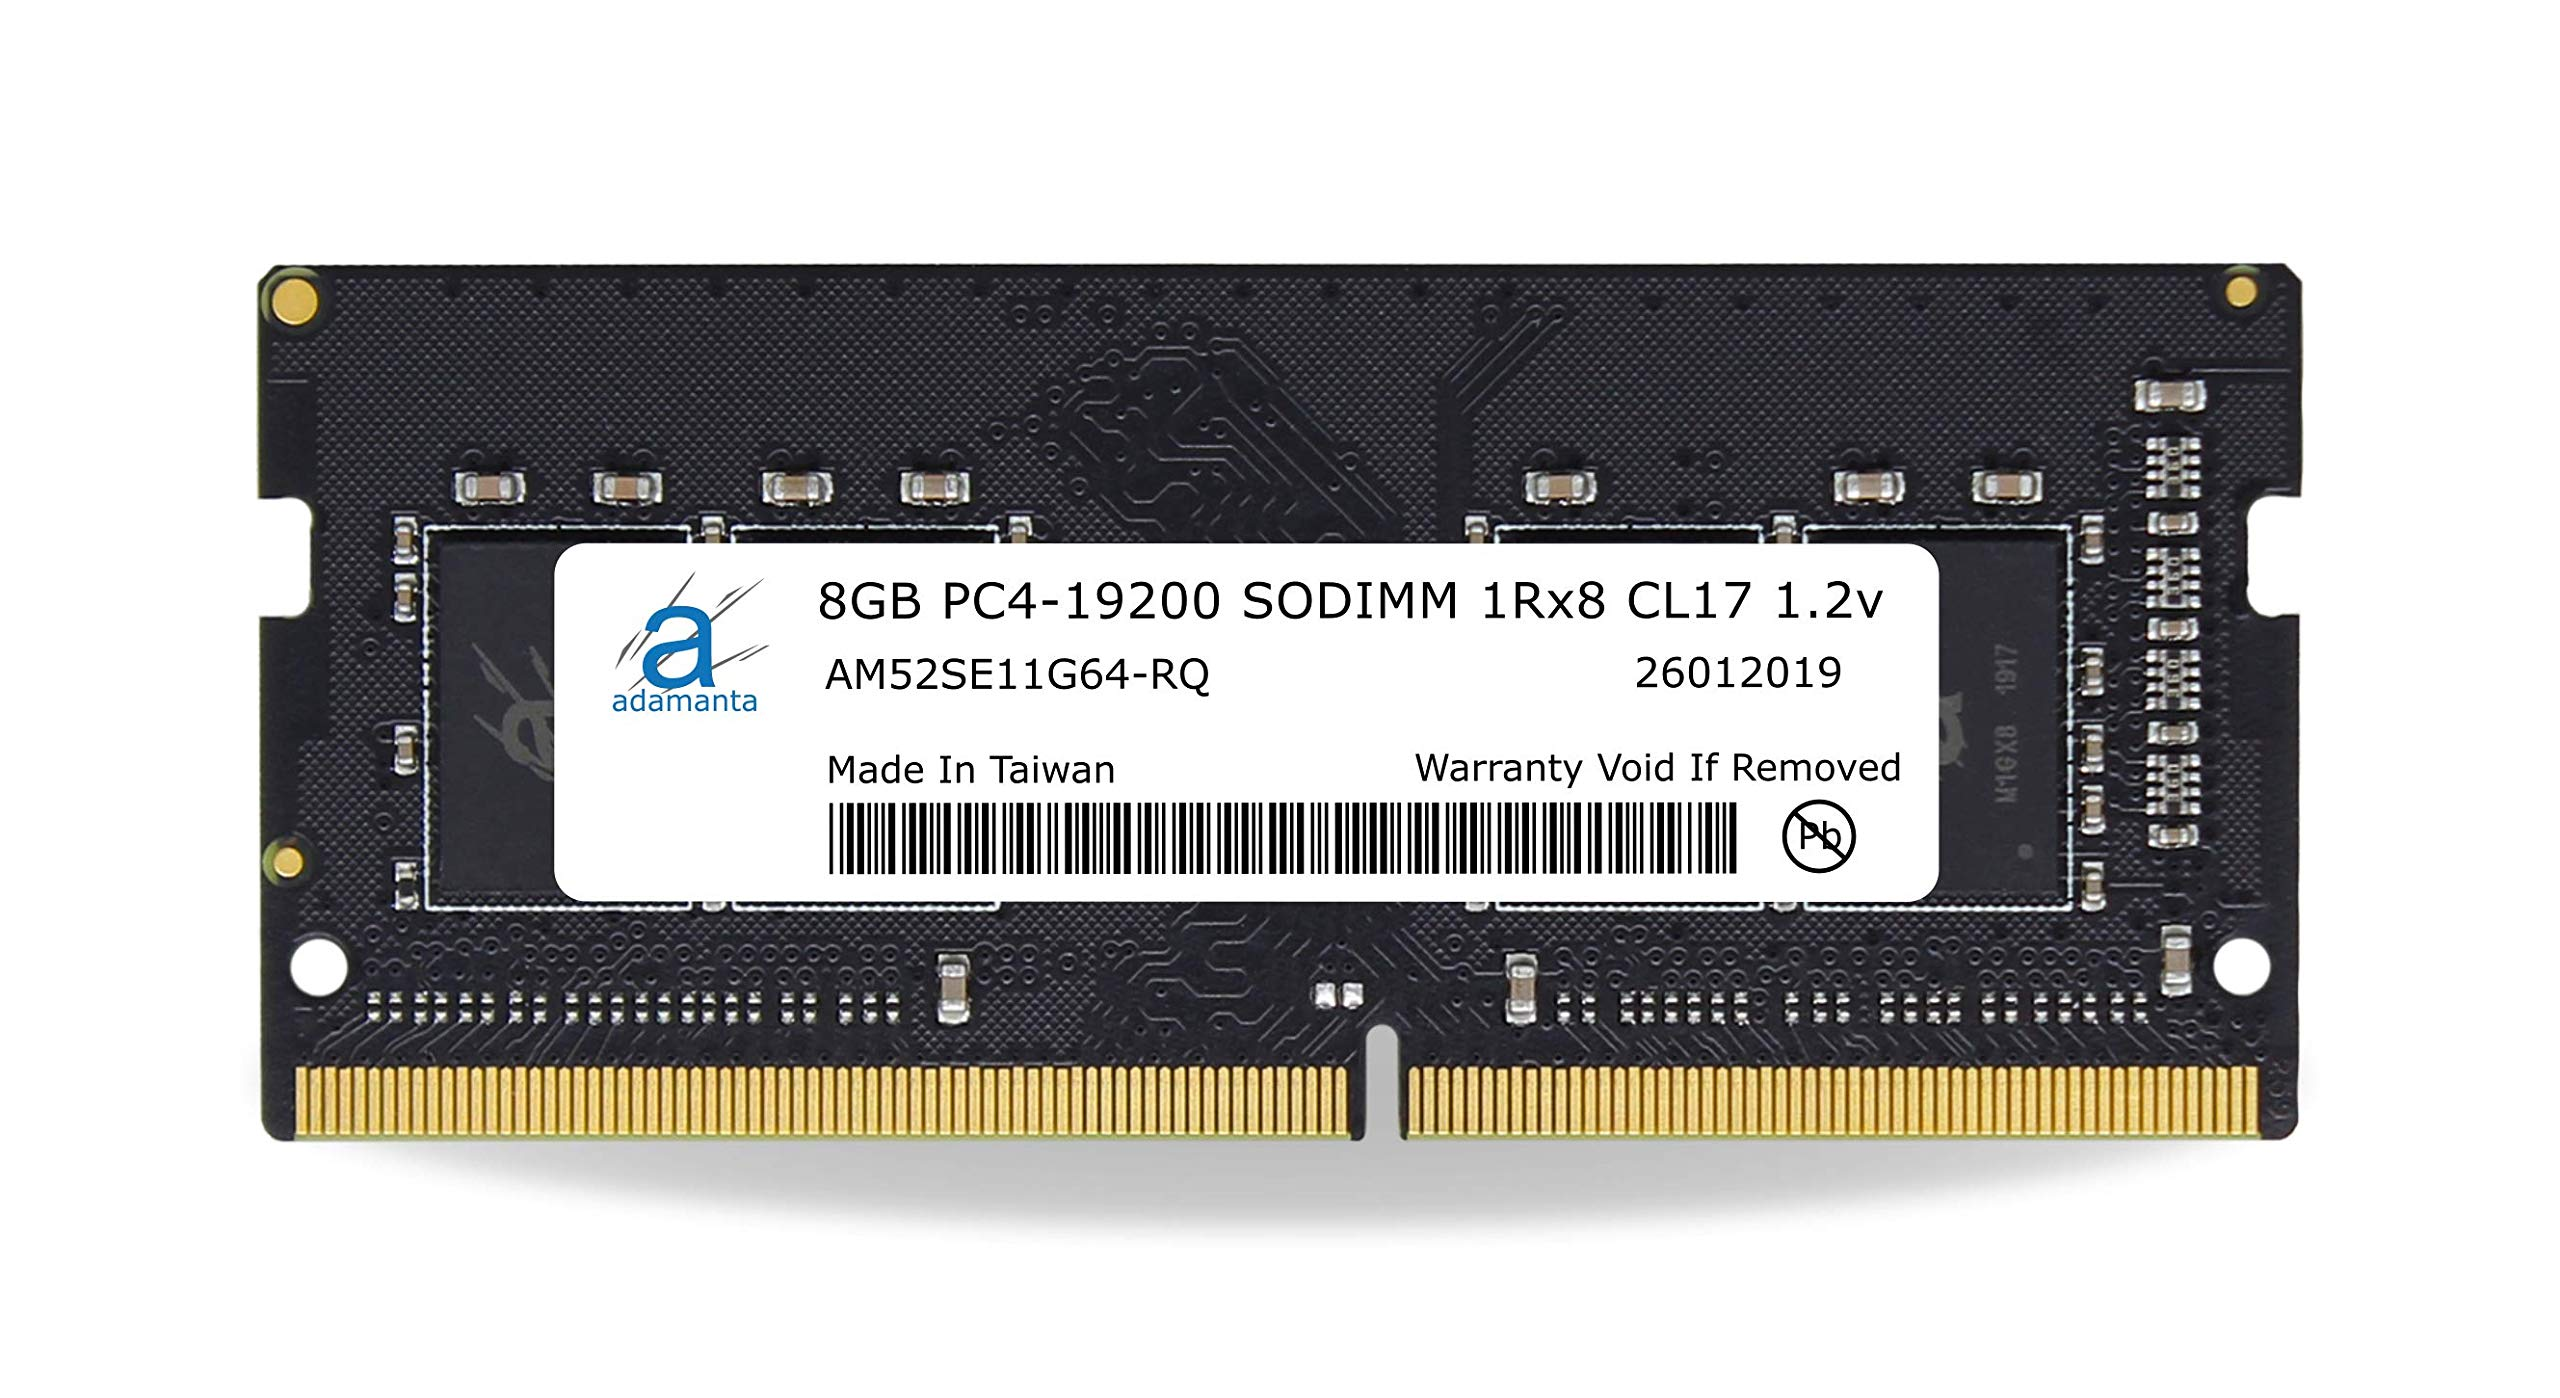 Memoria Ram 8GB Adamanta (1x8GB) Upgrade Compatible para HP 14 DDR4 2400Mhz PC4-19200 SODIMM 1Rx8 CL17 1.2v DRAM